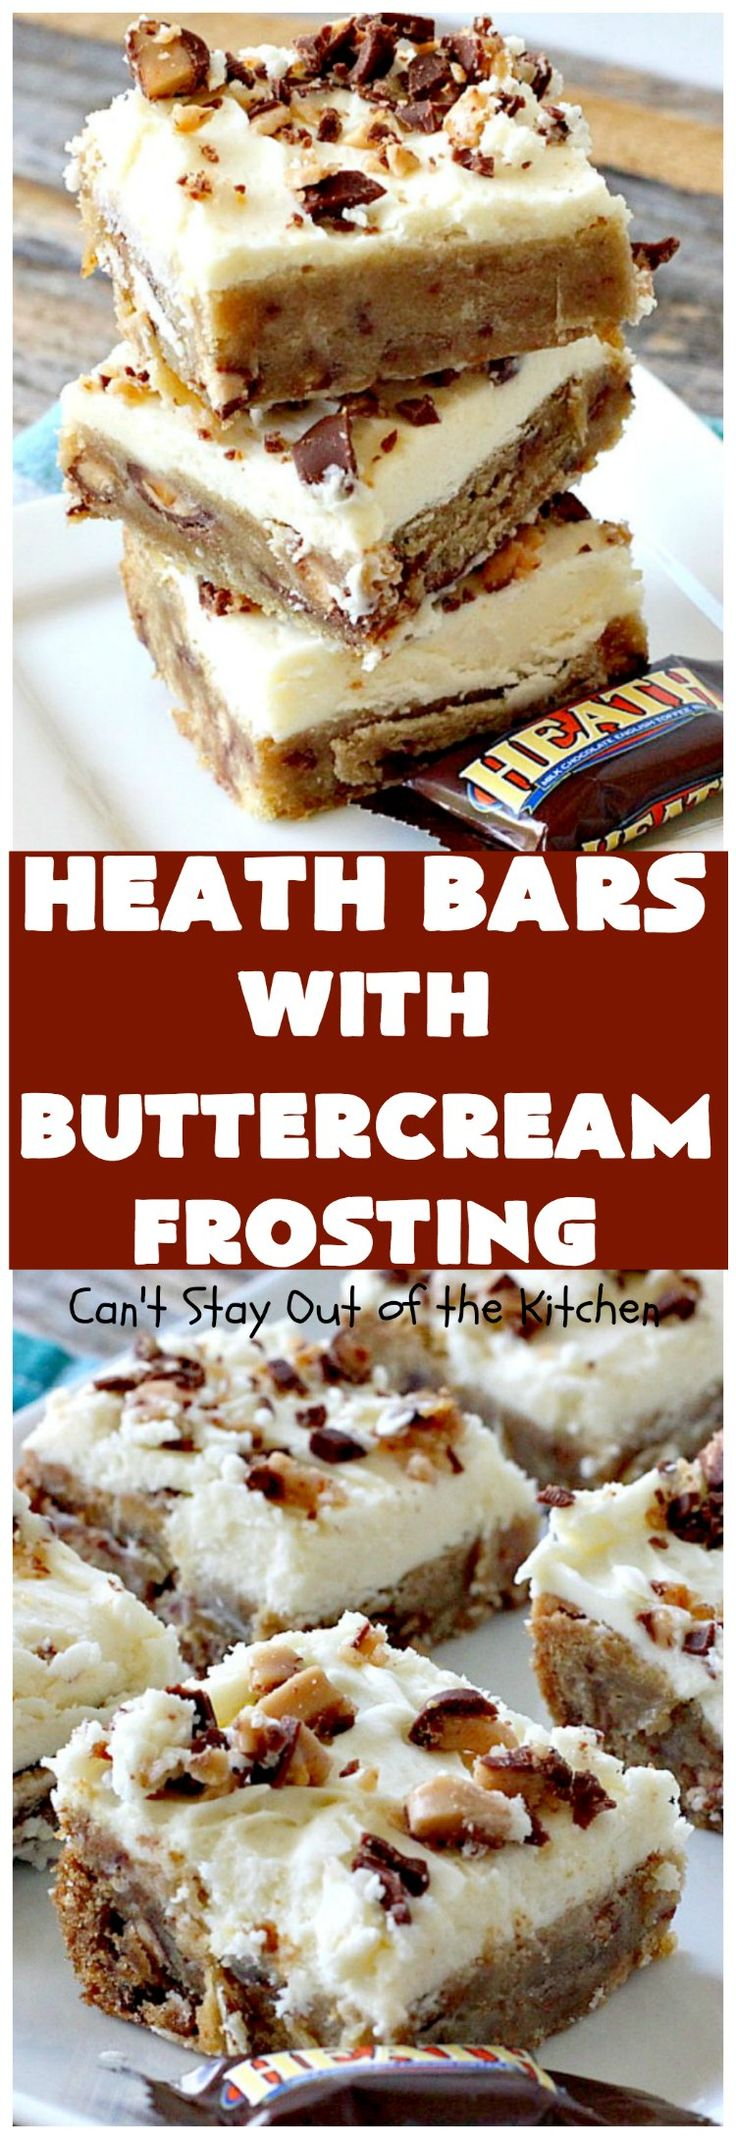 Heath Bars with Buttercream Frosting | Can't Stay Out of the Kitchen | these bar-type #cookies are divine! Amazing icing makes them spectacular. Uses #HeathCandyBars. #chocolate #dessert